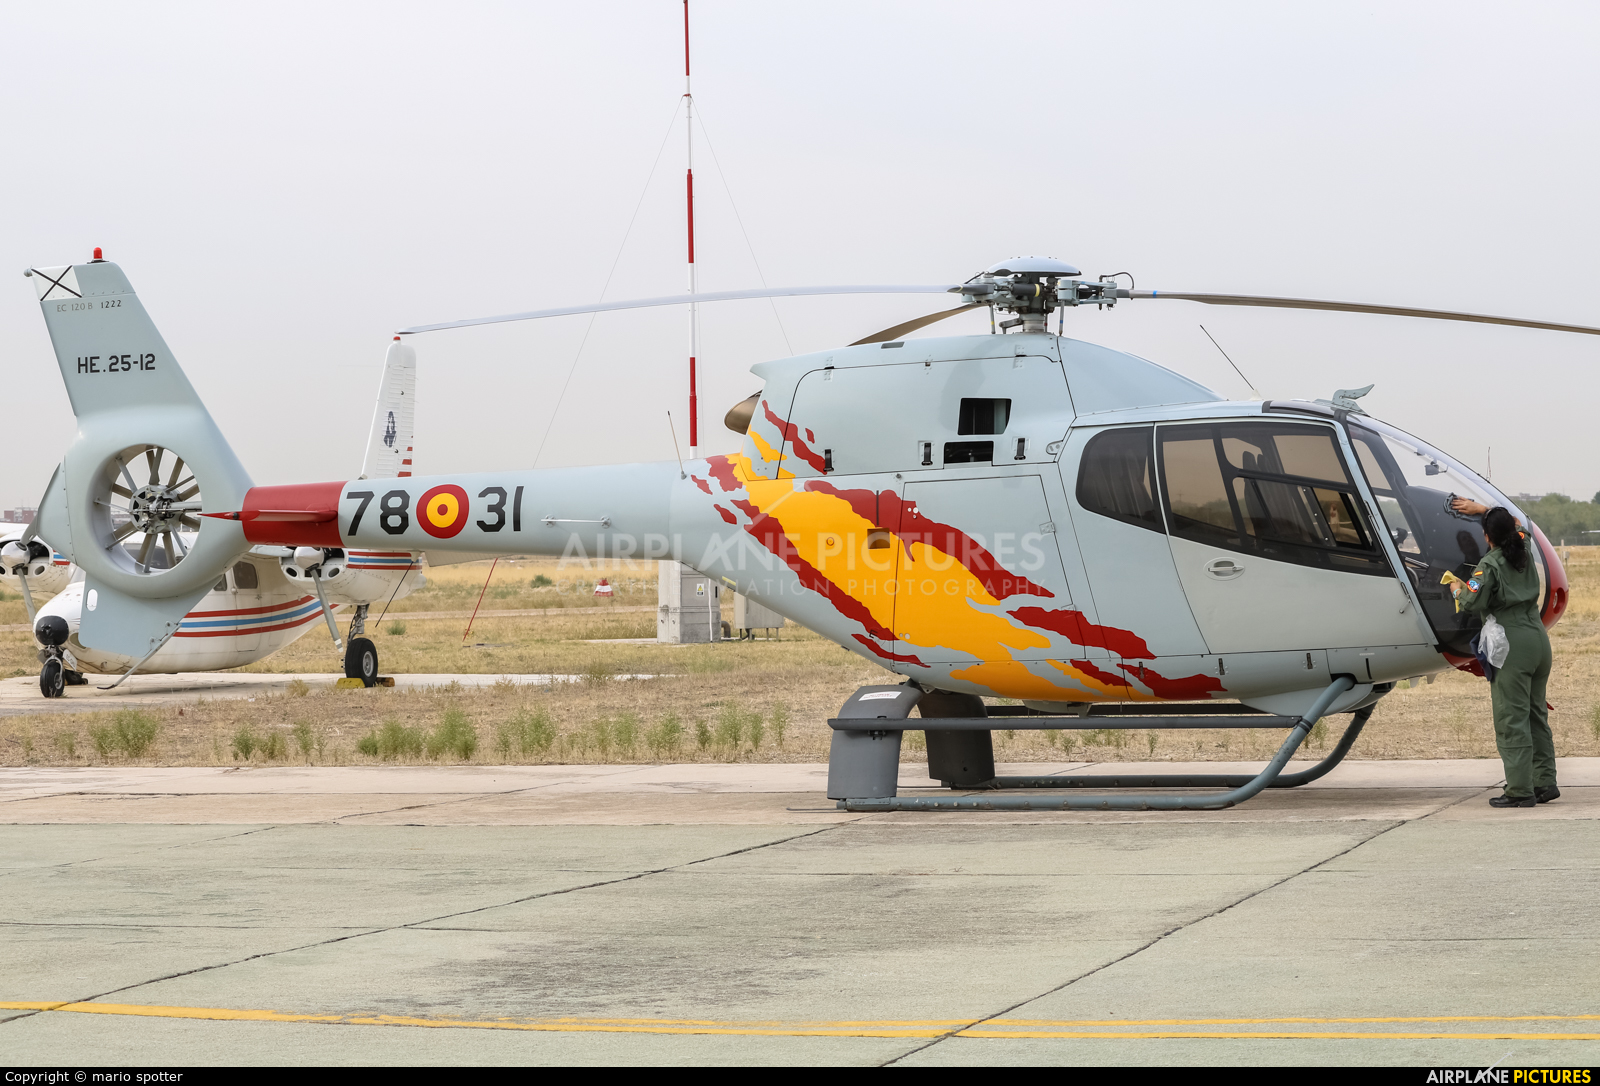 Spain - Air Force: Patrulla ASPA HE.25-12 aircraft at Madrid - Cuatro Vientos